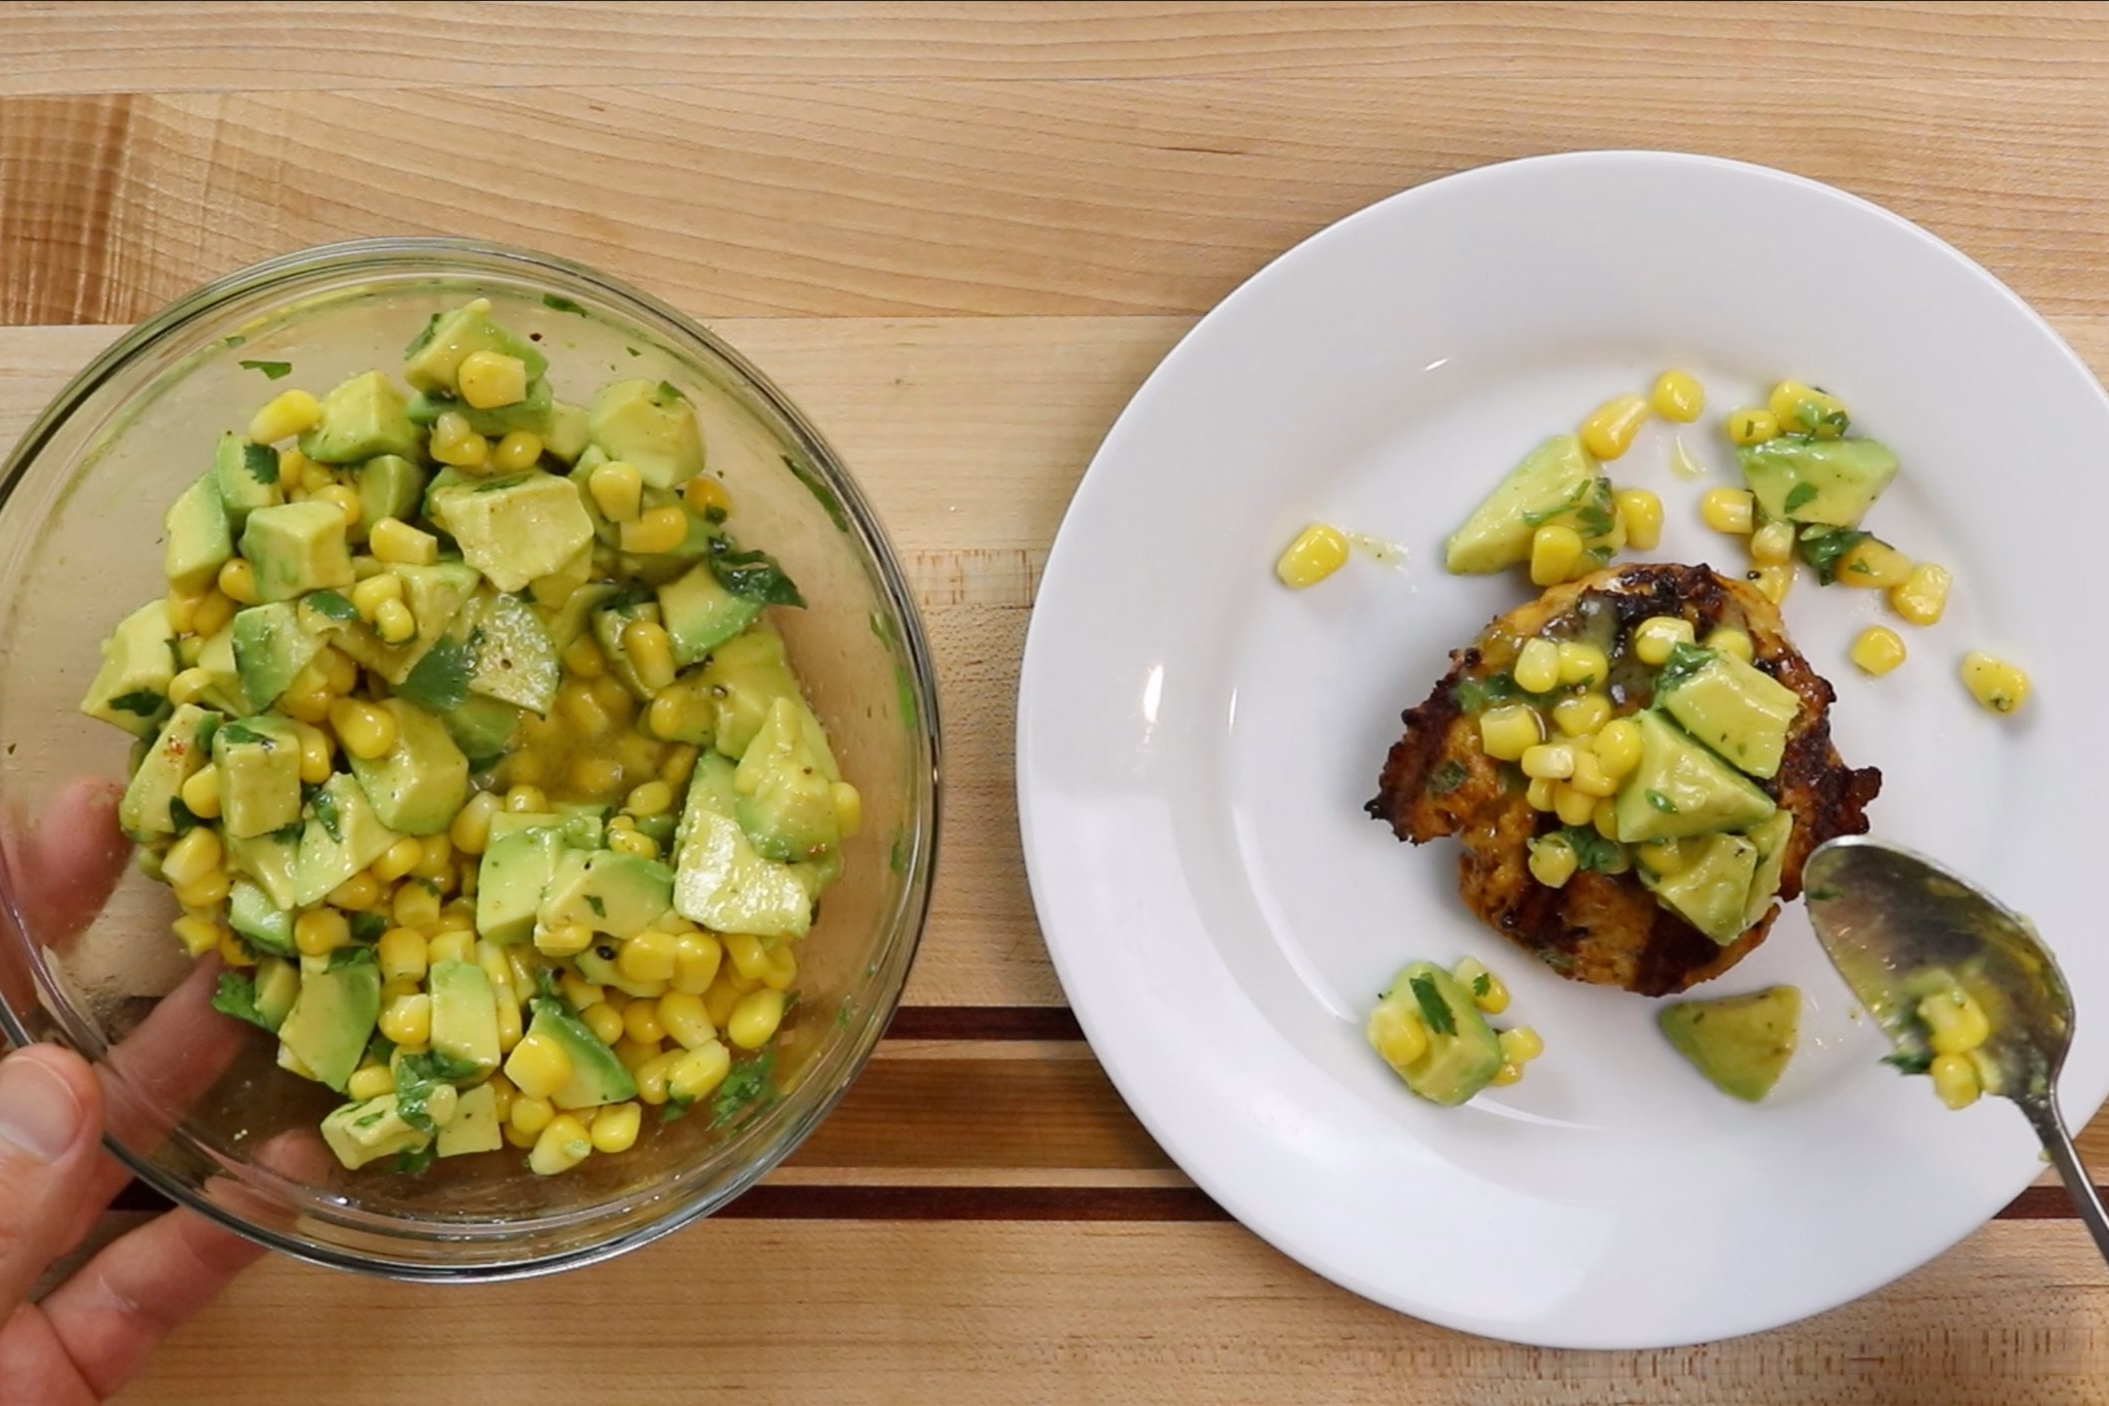 7. Top the chicken burgers with the avocado salsa and serve immediately. -